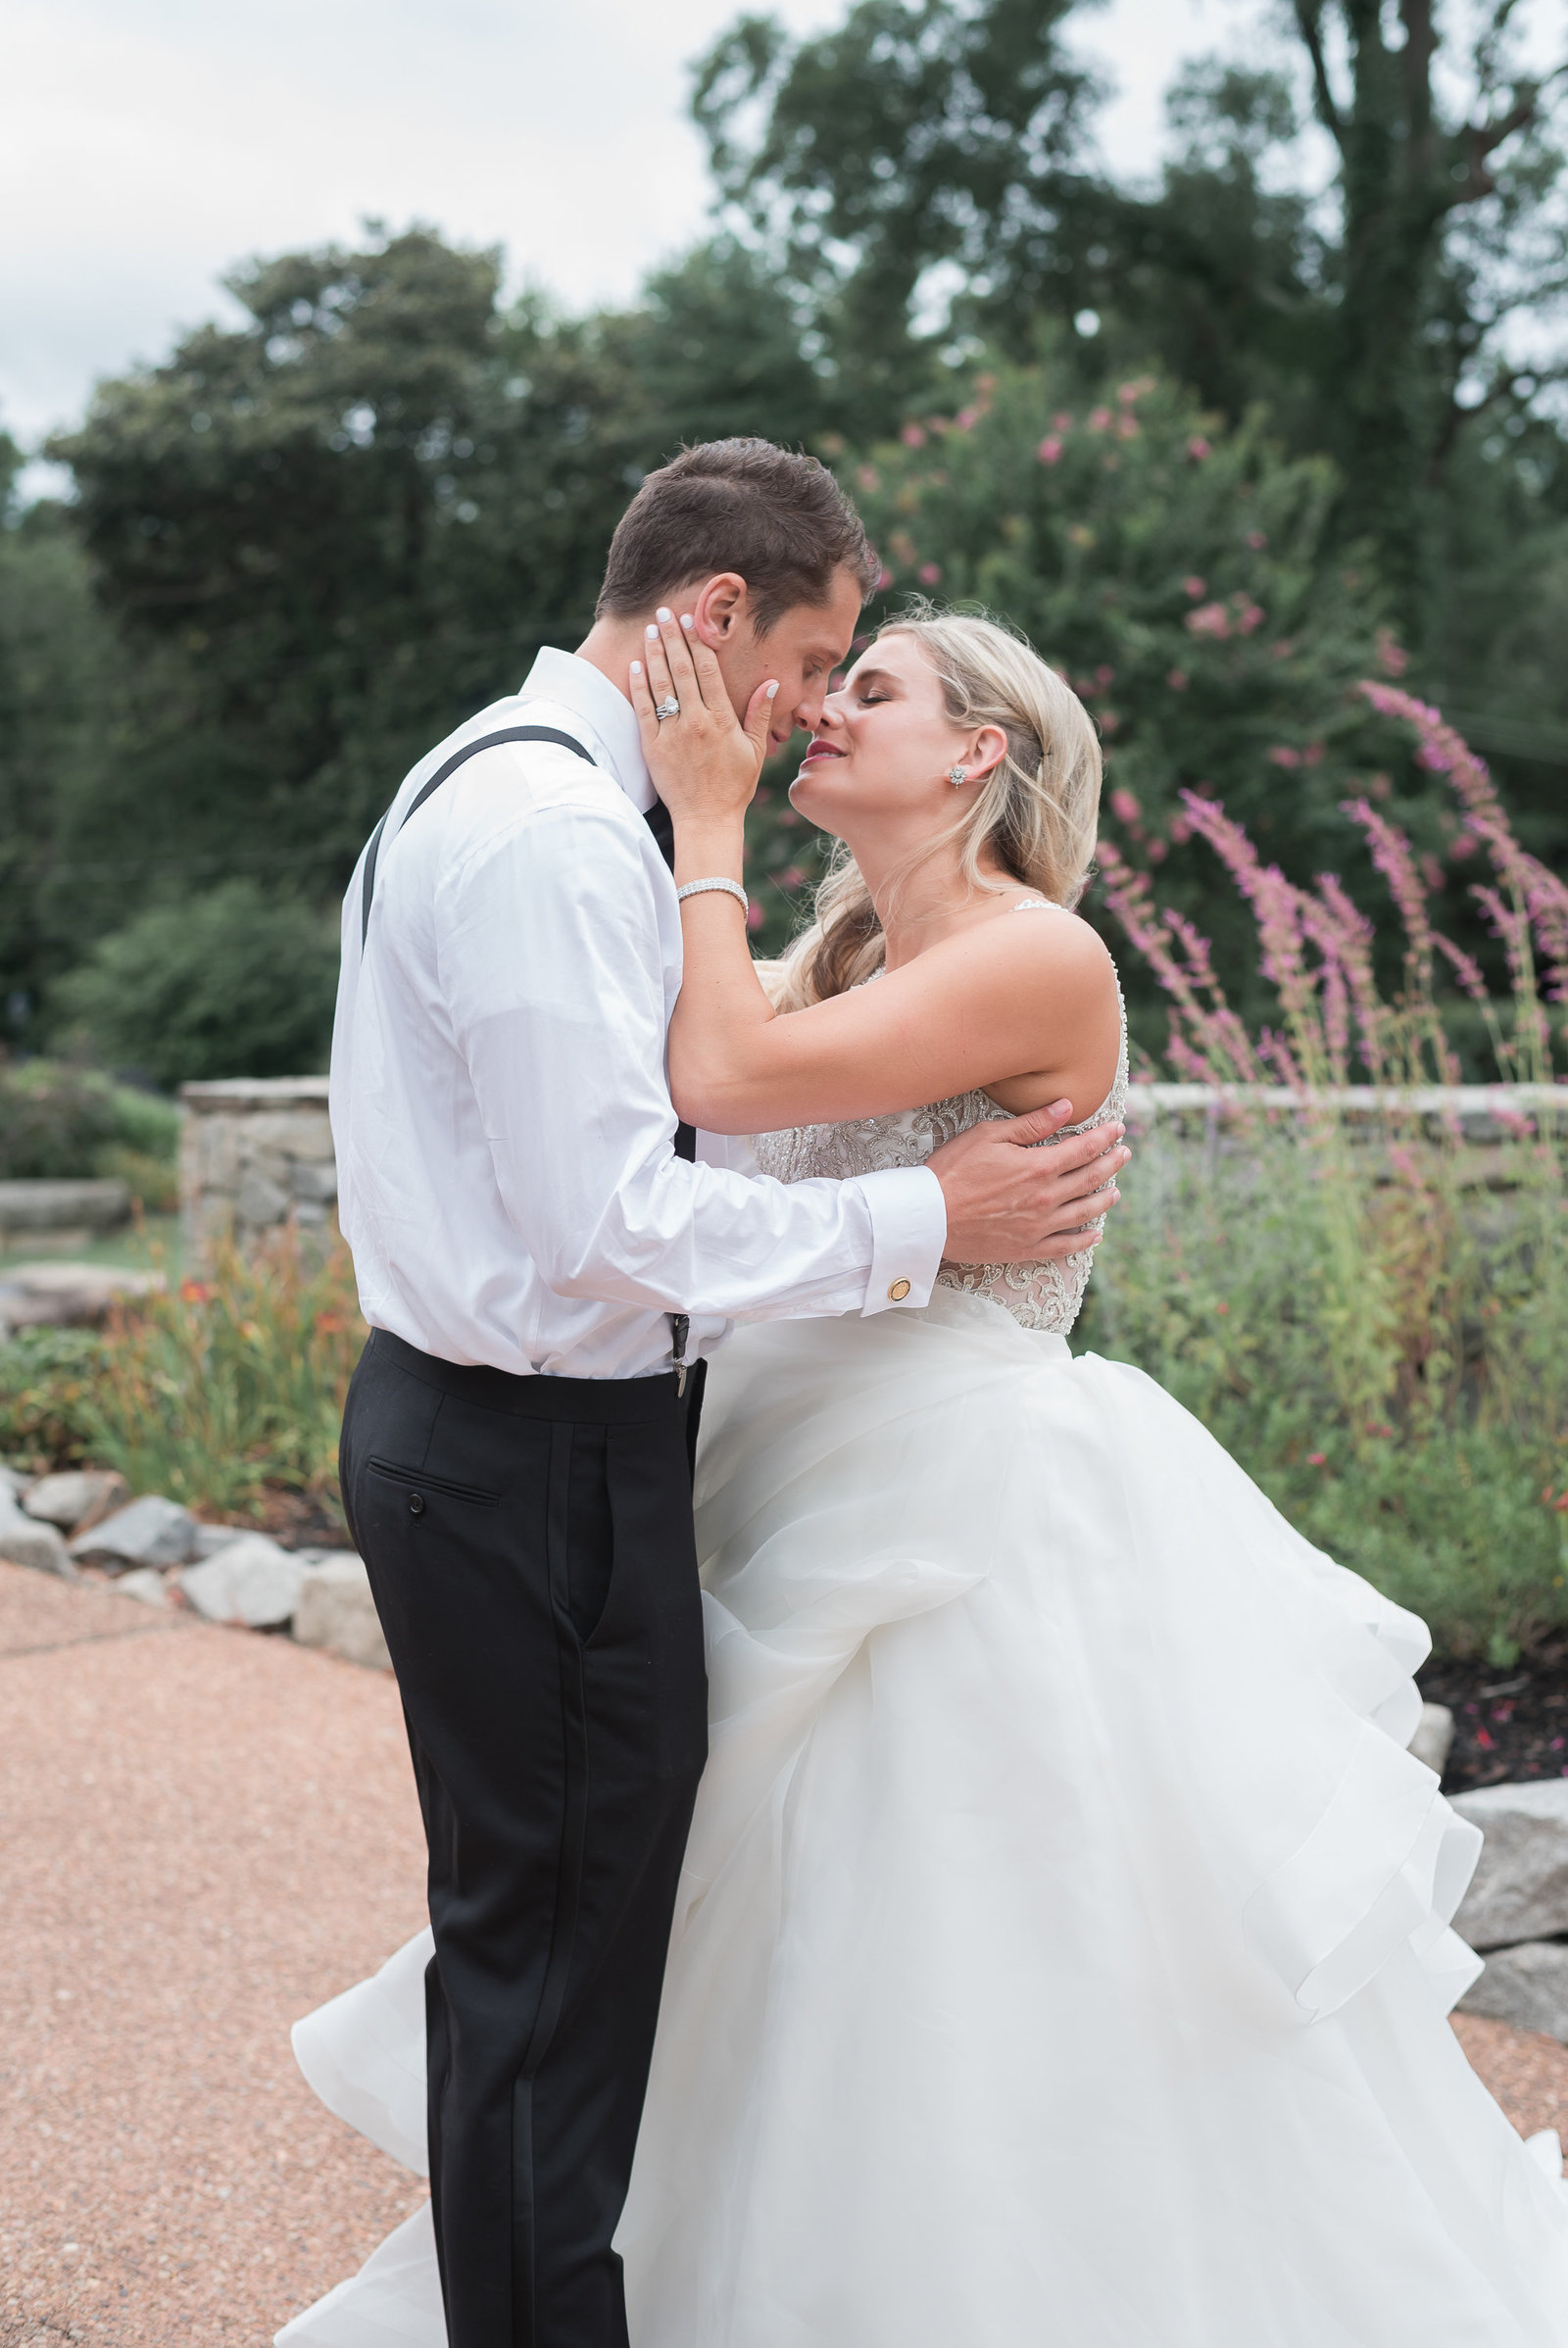 Byra-and-Nick-Willow-Oaks-Country-Club-Wedding-Melissa-Desjardins-Photography-9